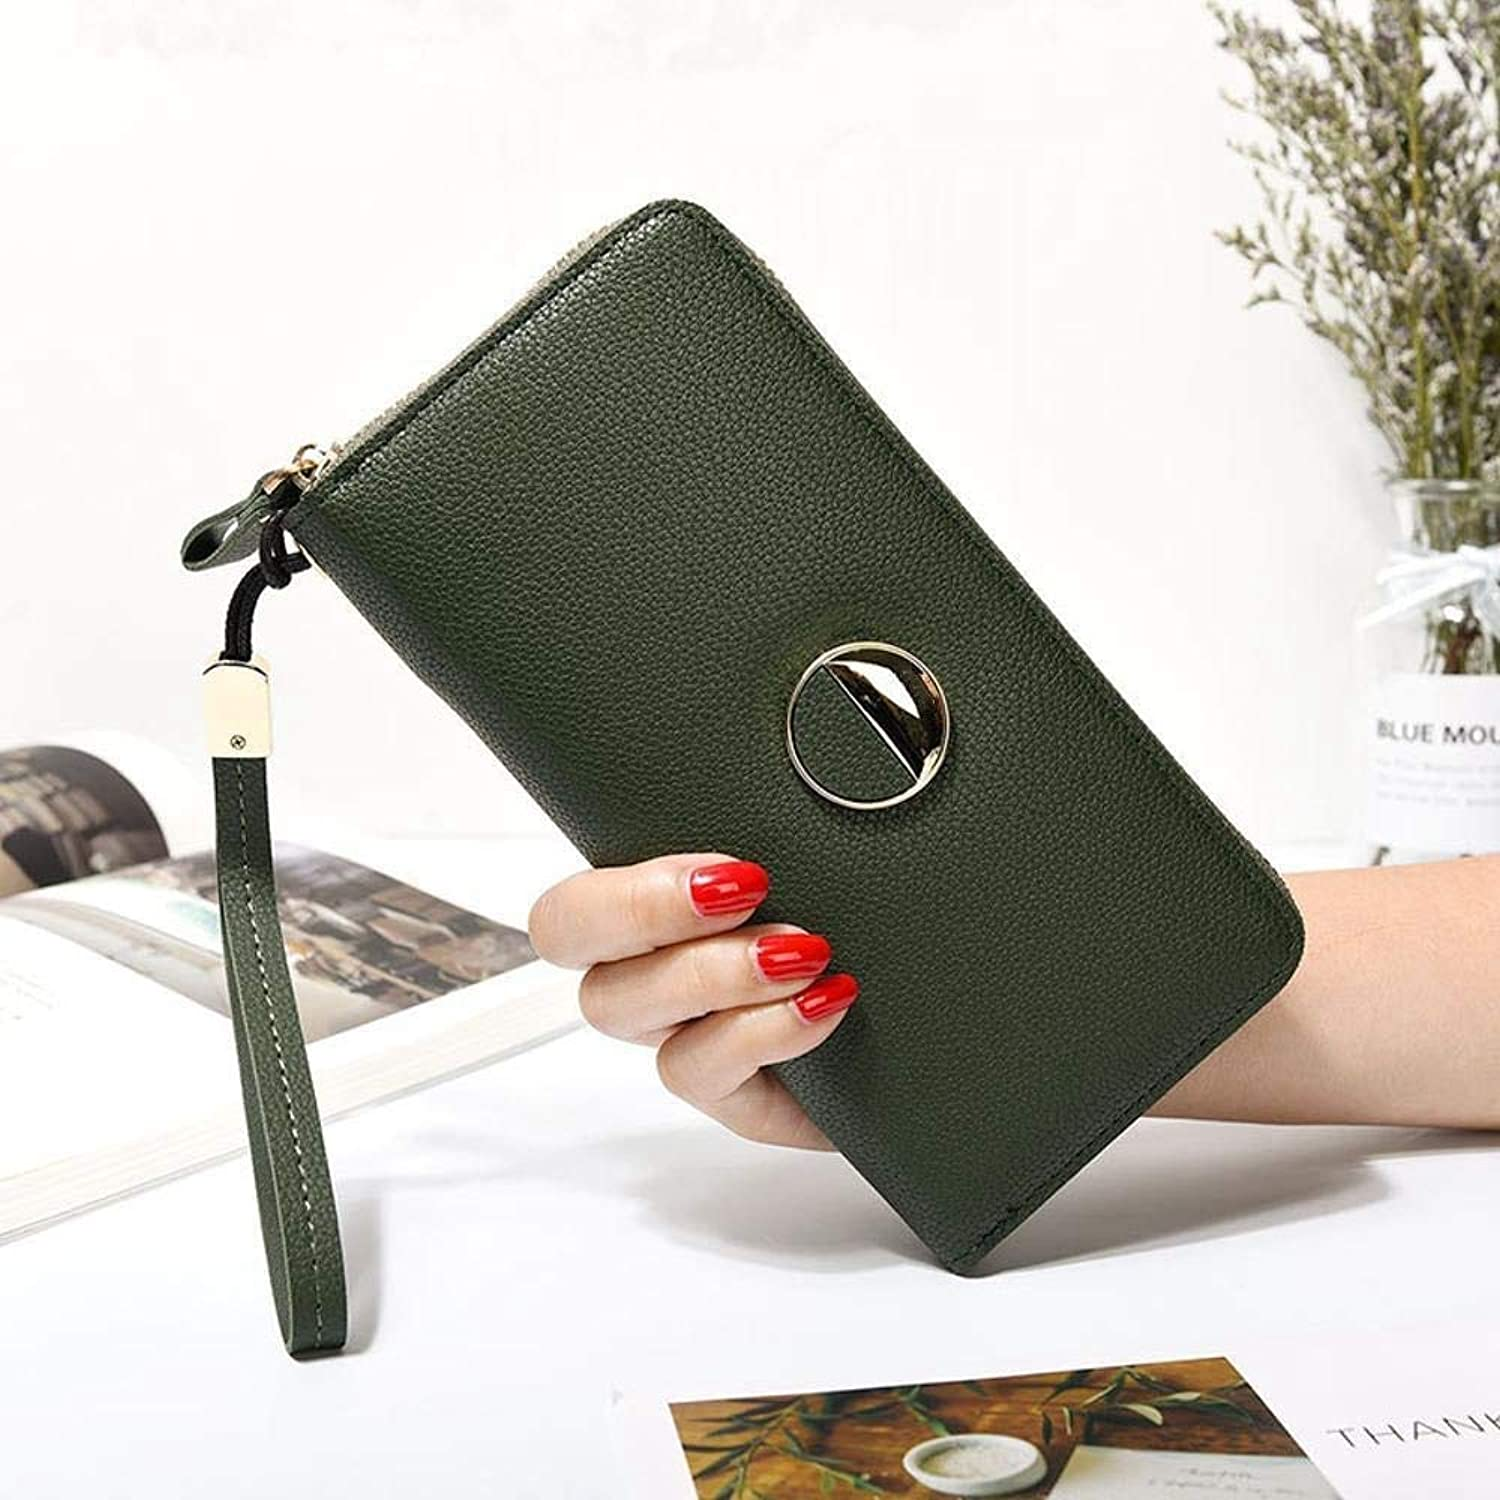 Girls Purse Women's Wallet,Women's Large Wallet Zipper Wallet Bill Clamp Multifunctional Hand Bag PU Leather (color   A)